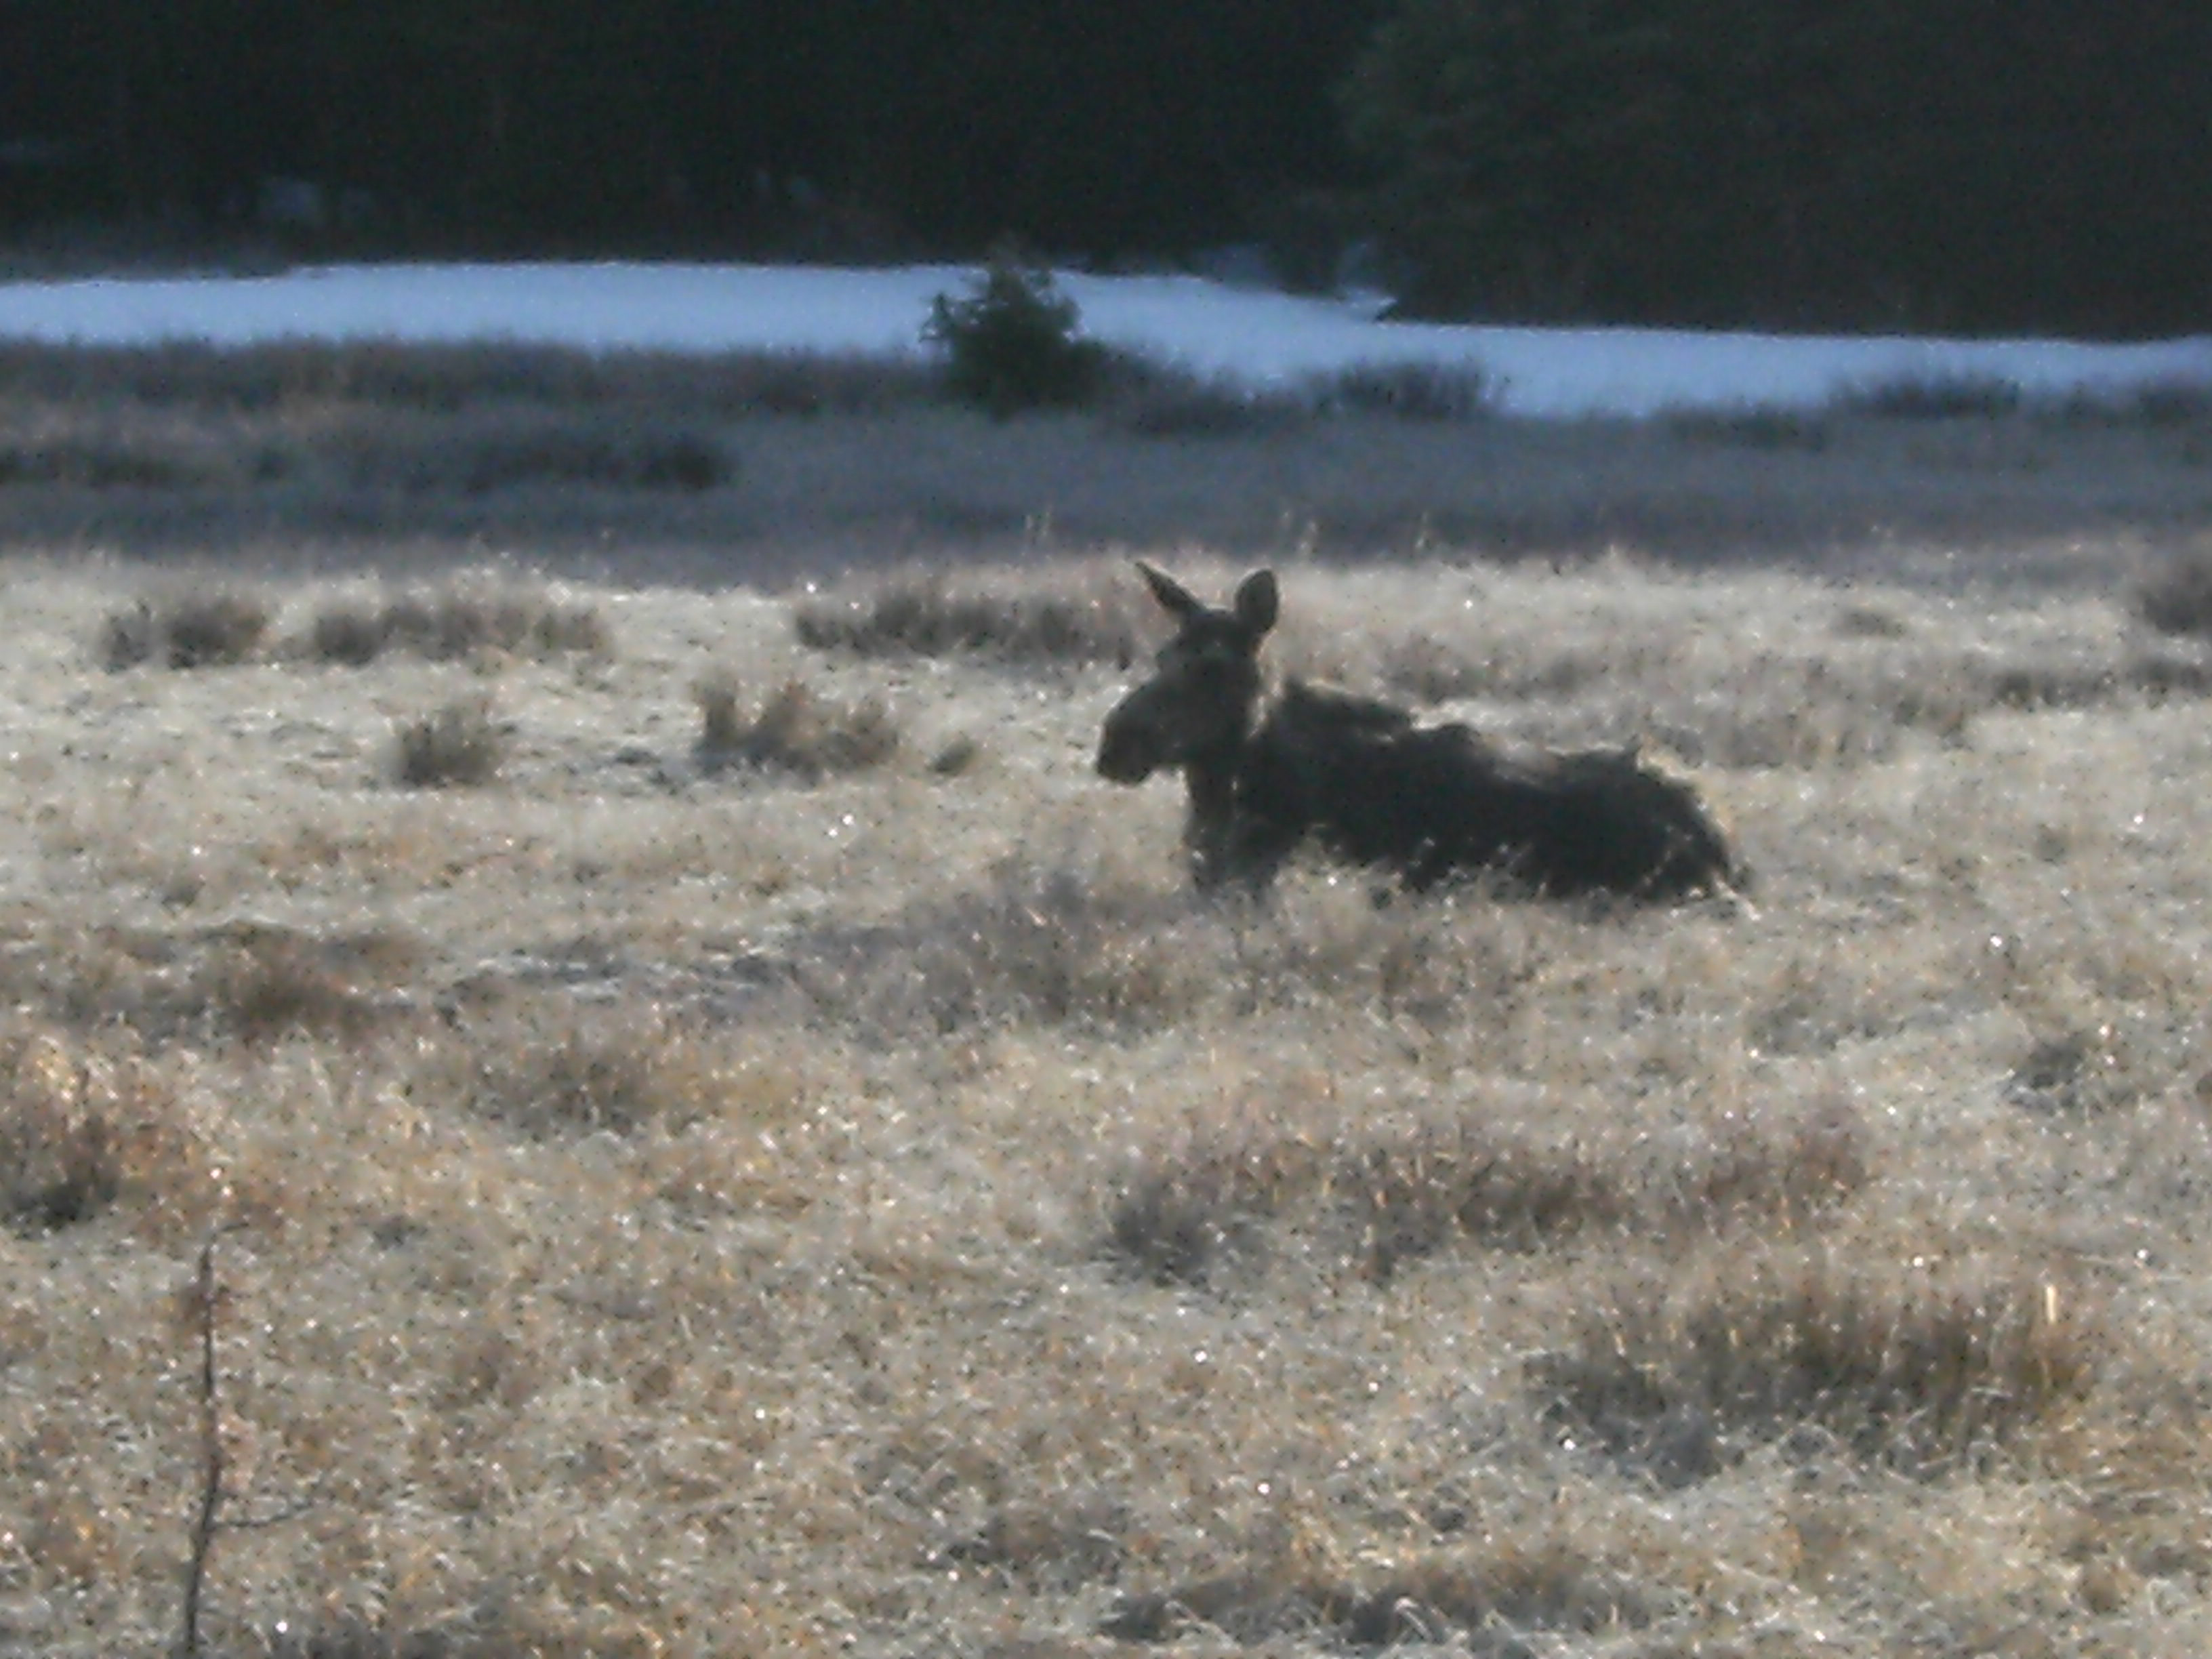 This one just sat and watched me.  She had frost on her fur.